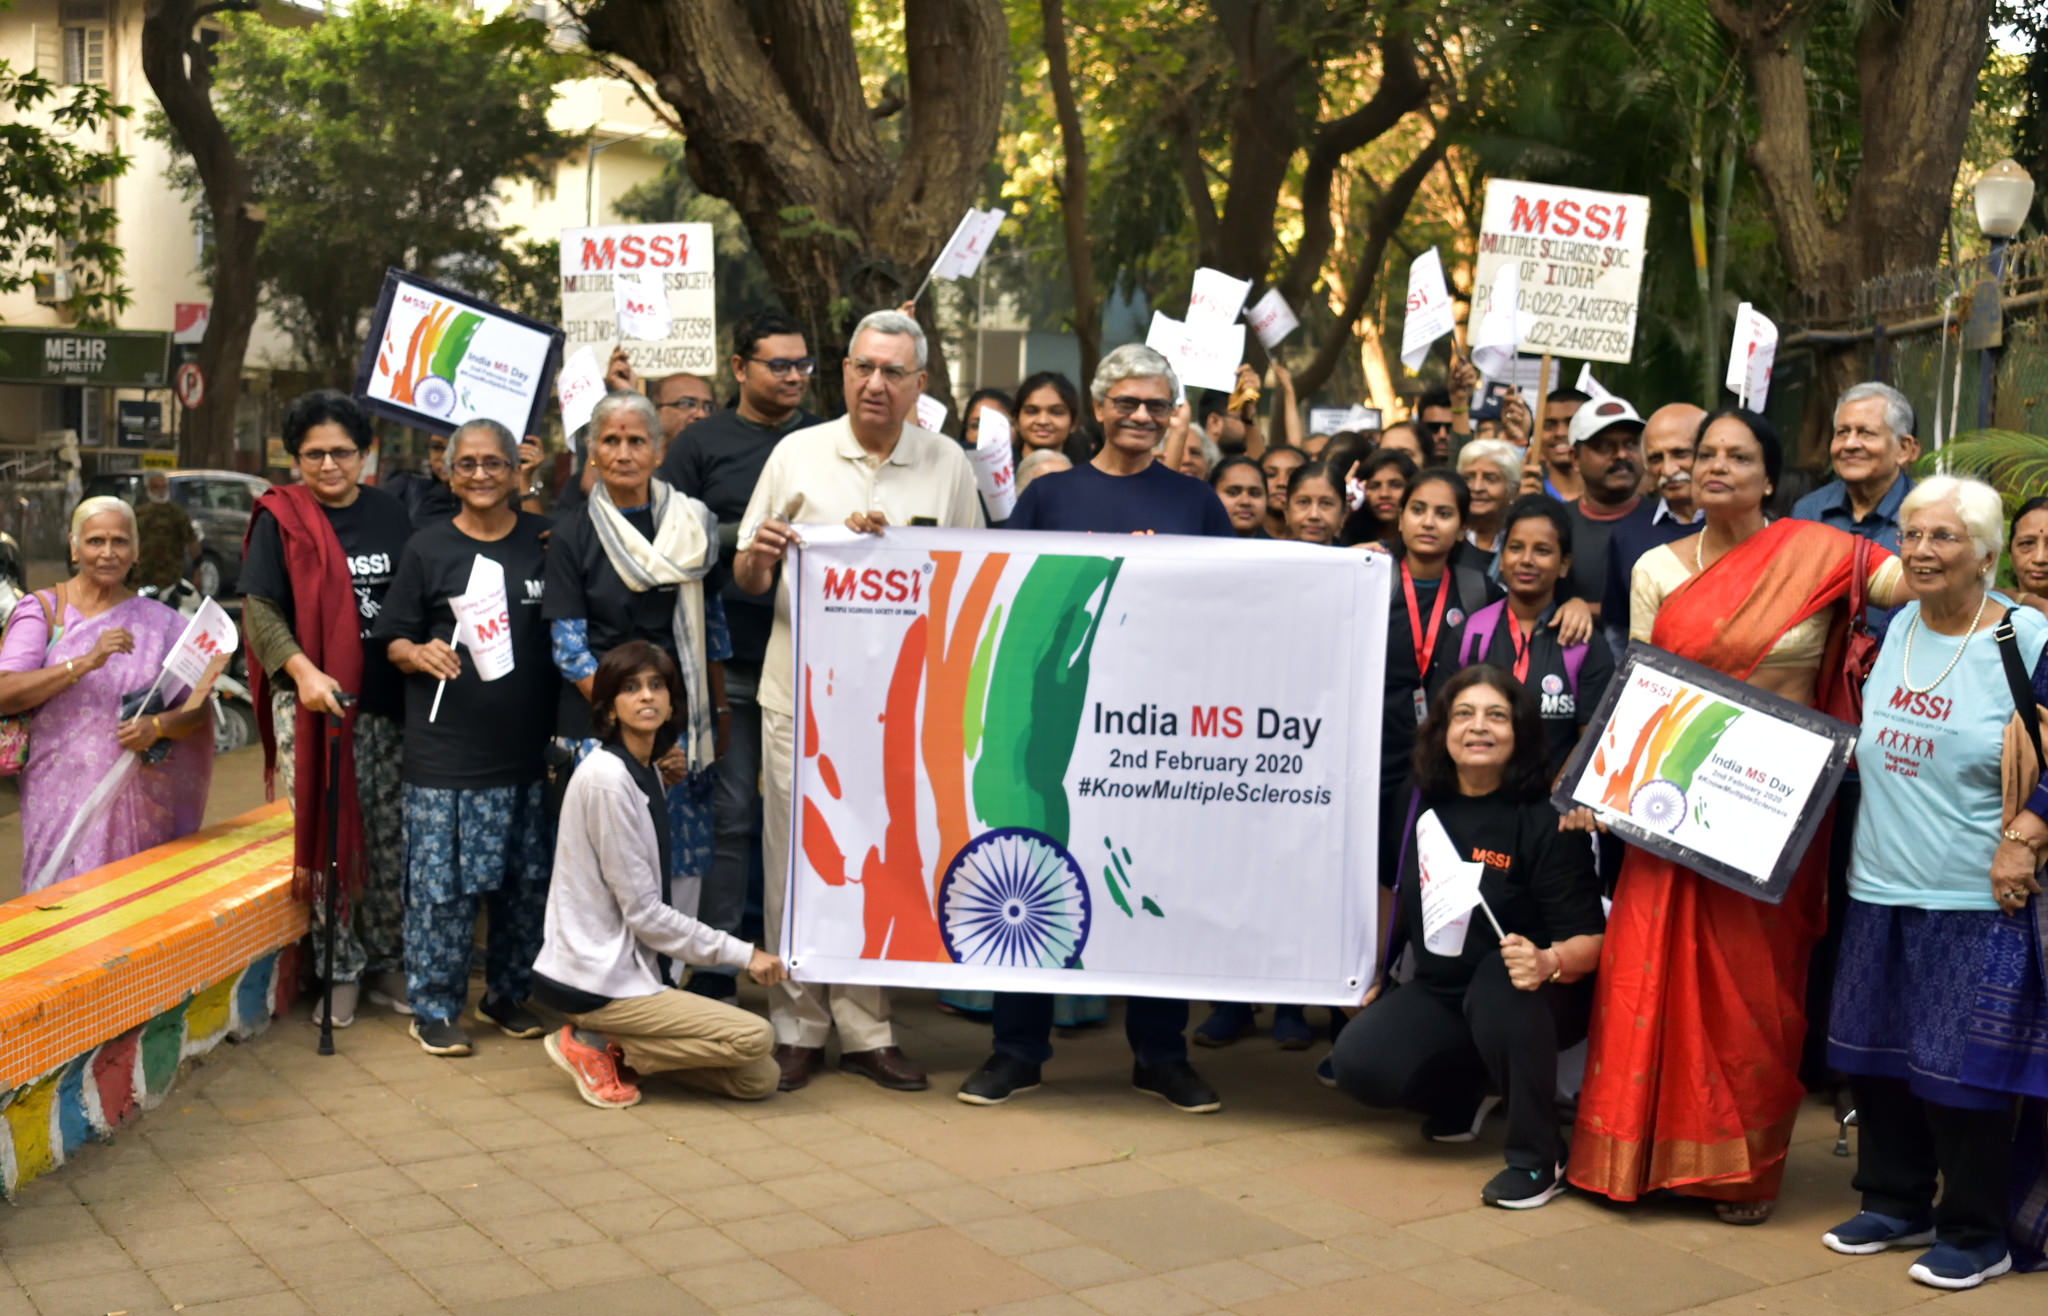 MS Walk on INDIA MS DAY – 2020